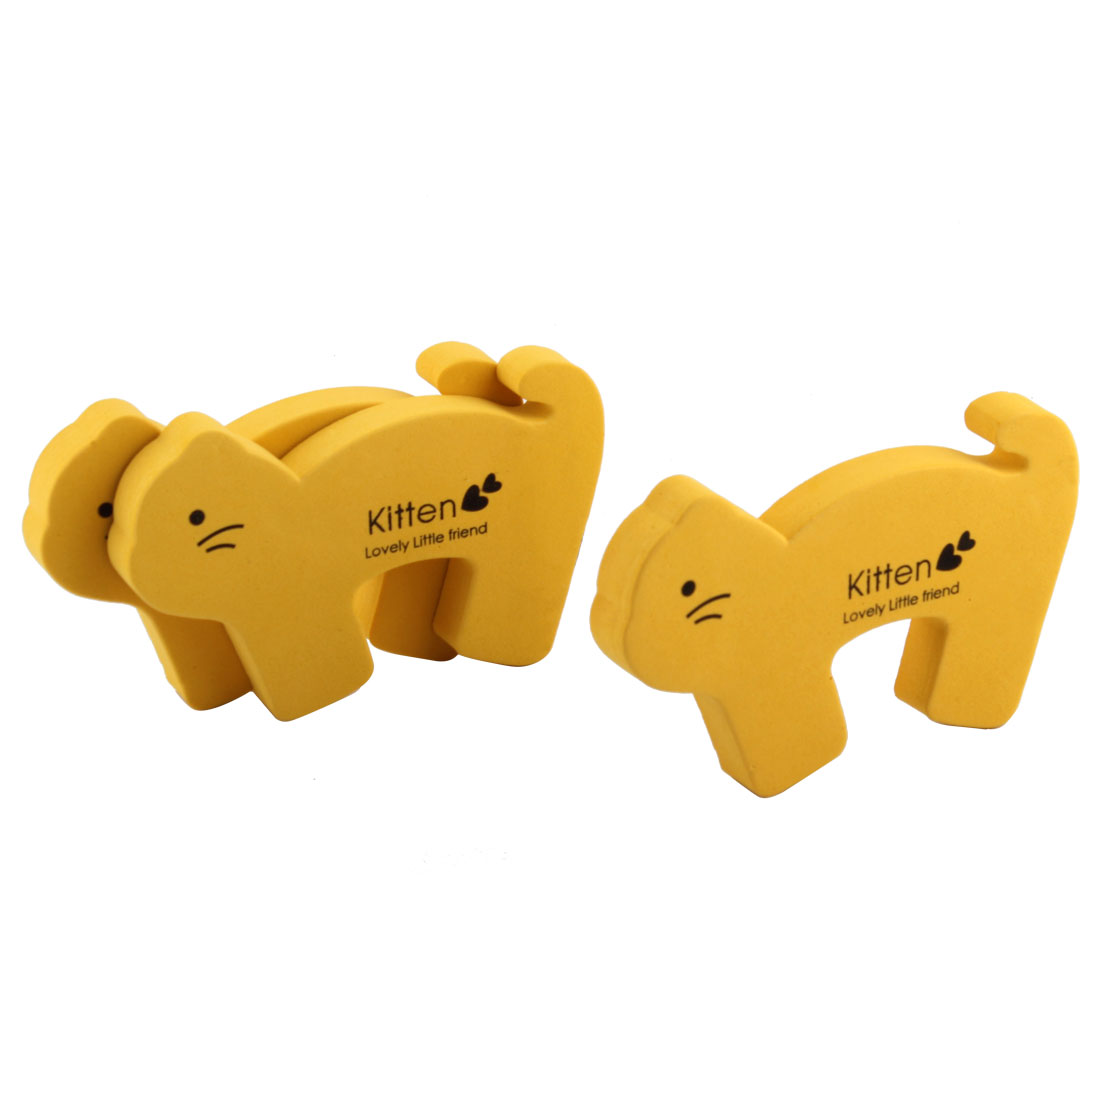 Home Foam Cartoon Rabbit Pattern Safety Door Stopper Cushion Yellow 3pcs